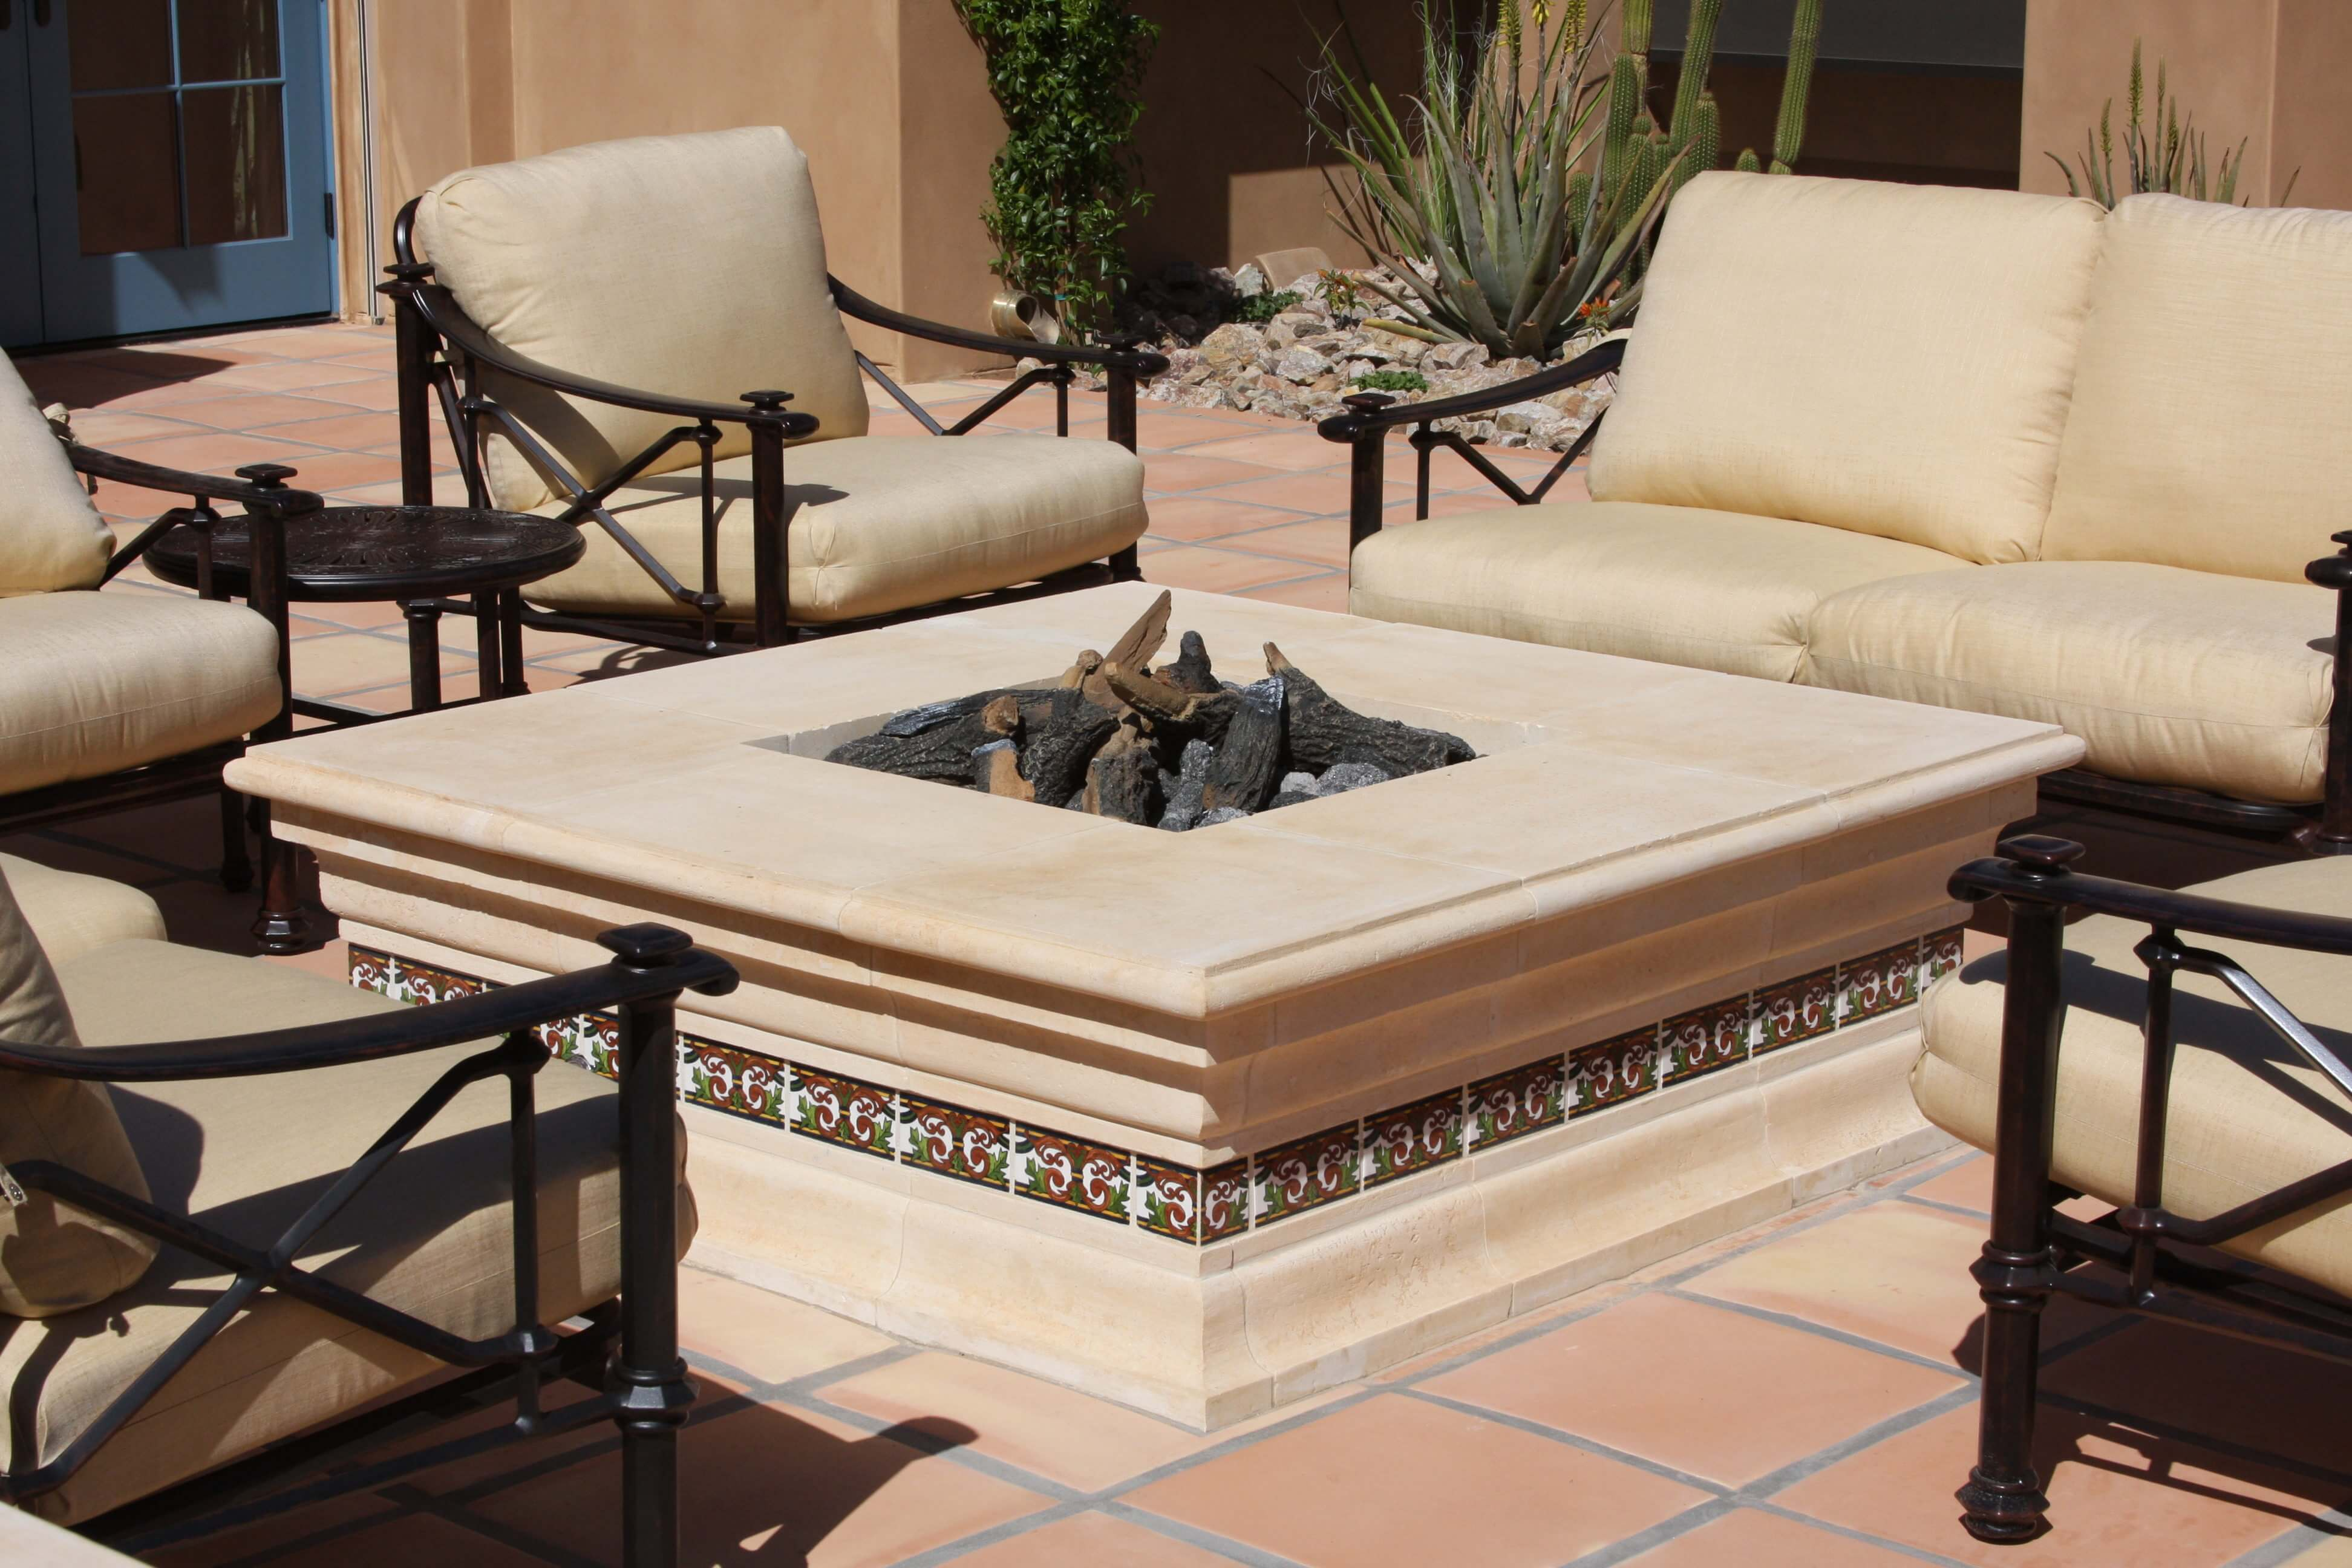 3-Decorative-Limestone-Fire-Pit-with-Recessed-Tile-Deco